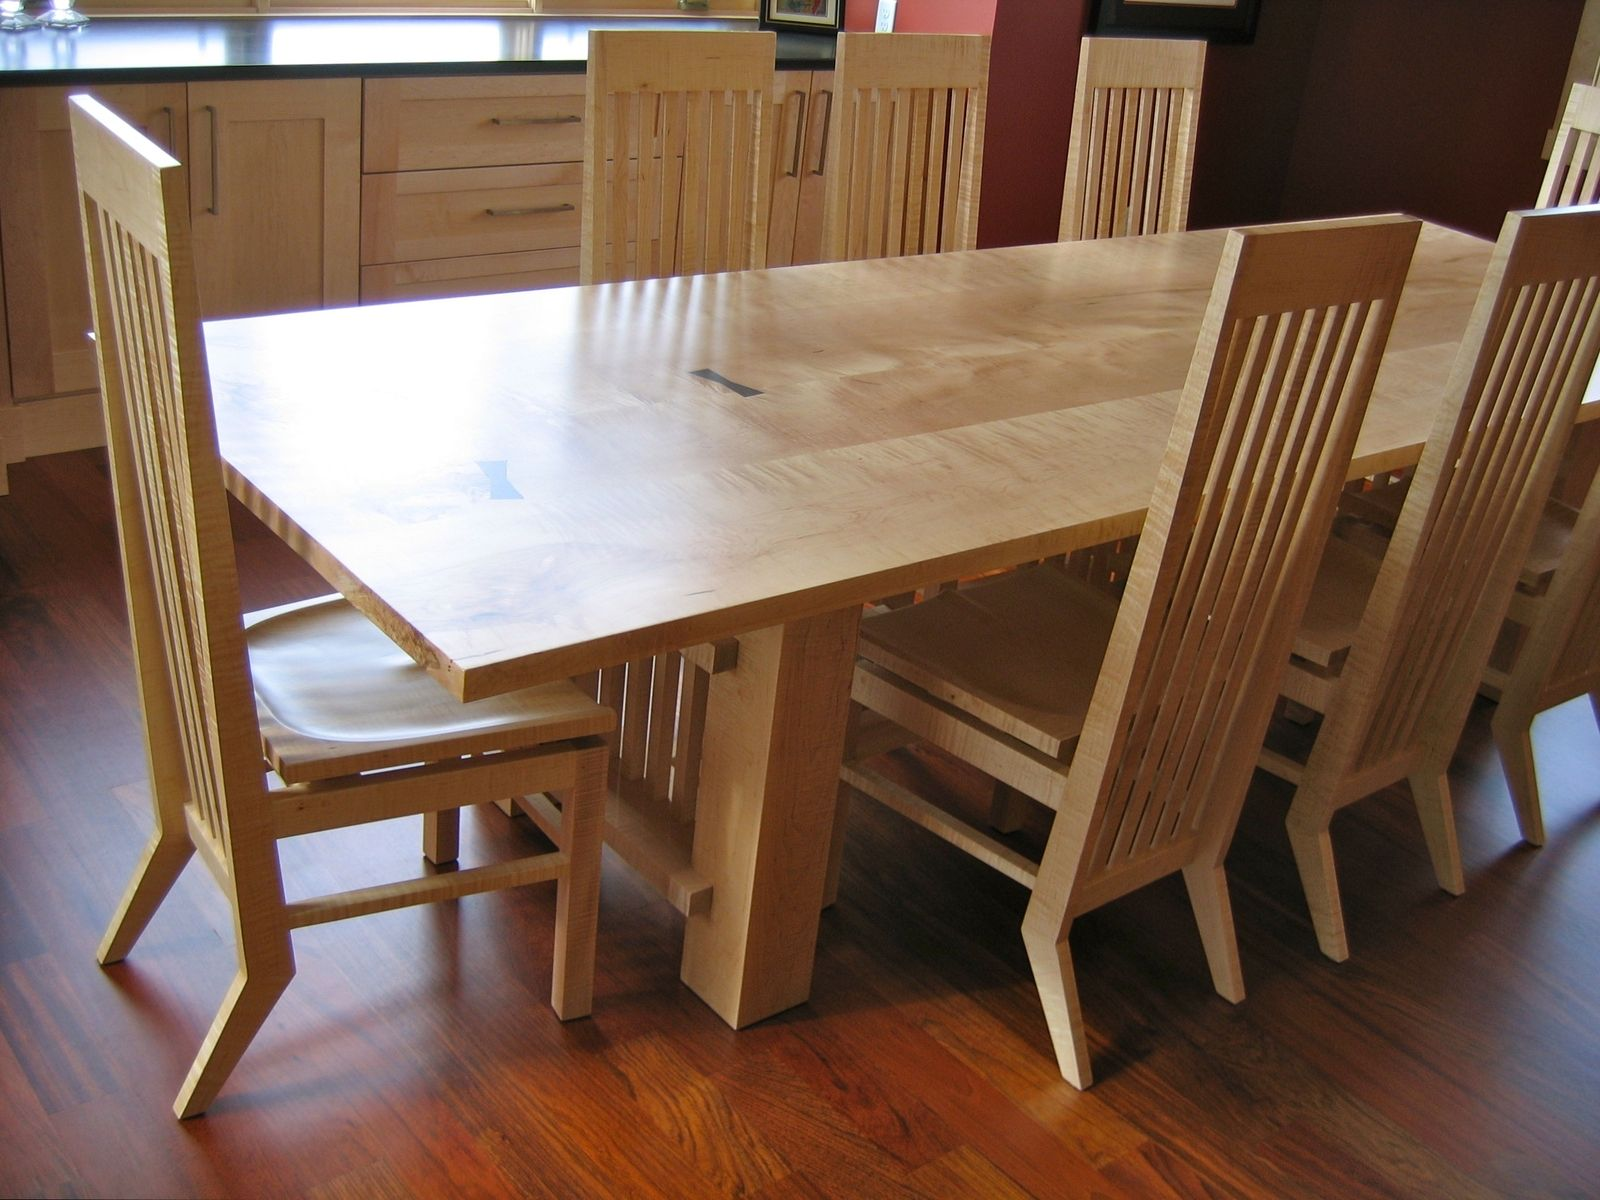 Hand Crafted Maple Dining Table by David Naso Designs  CustomMadecom